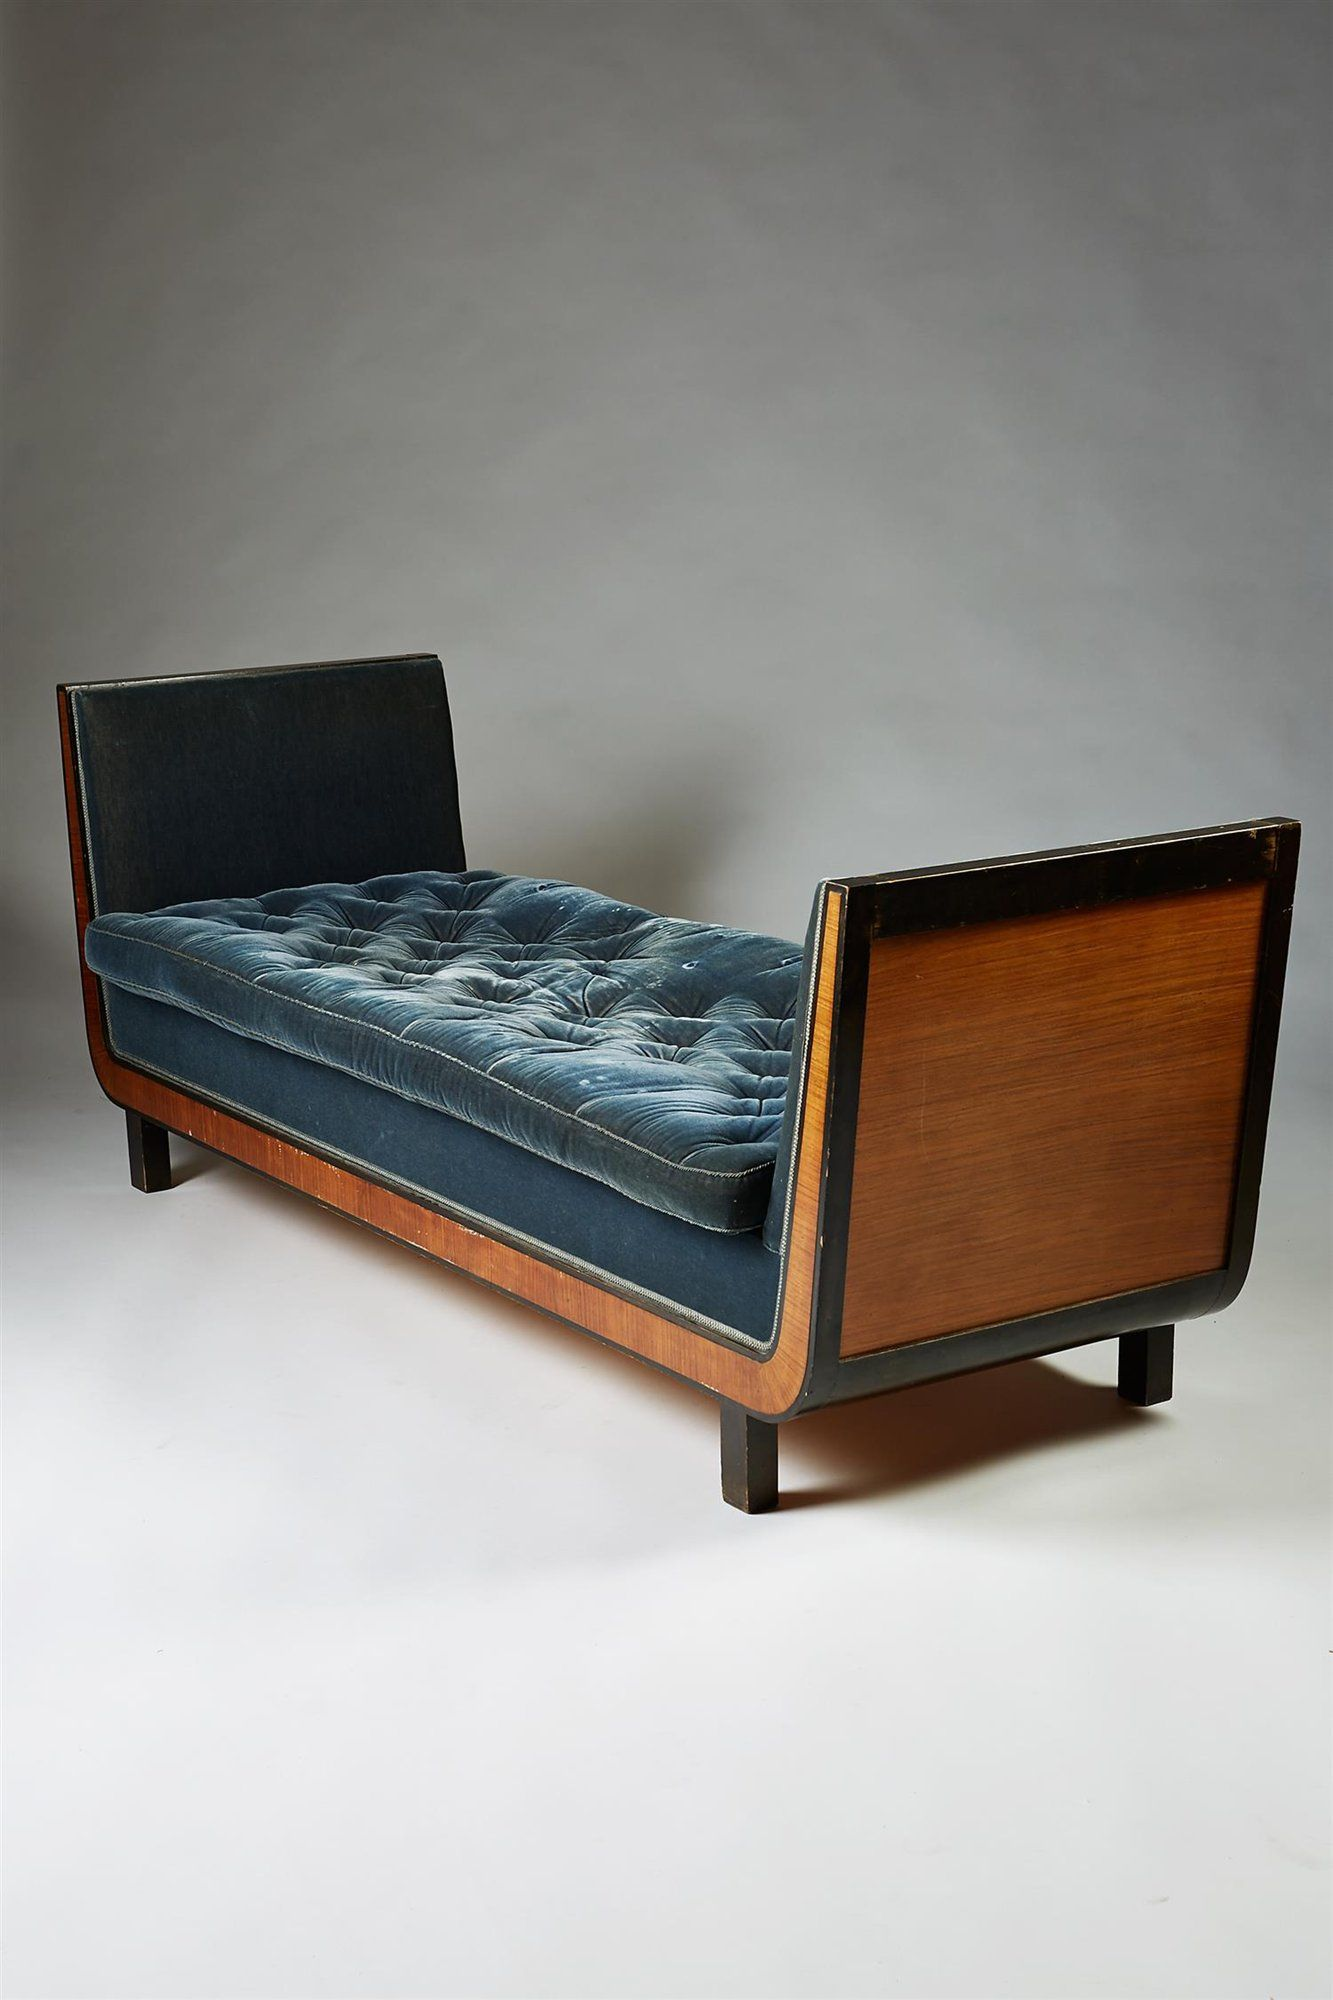 Daybed anonymous sweden us a art deco furniture u style